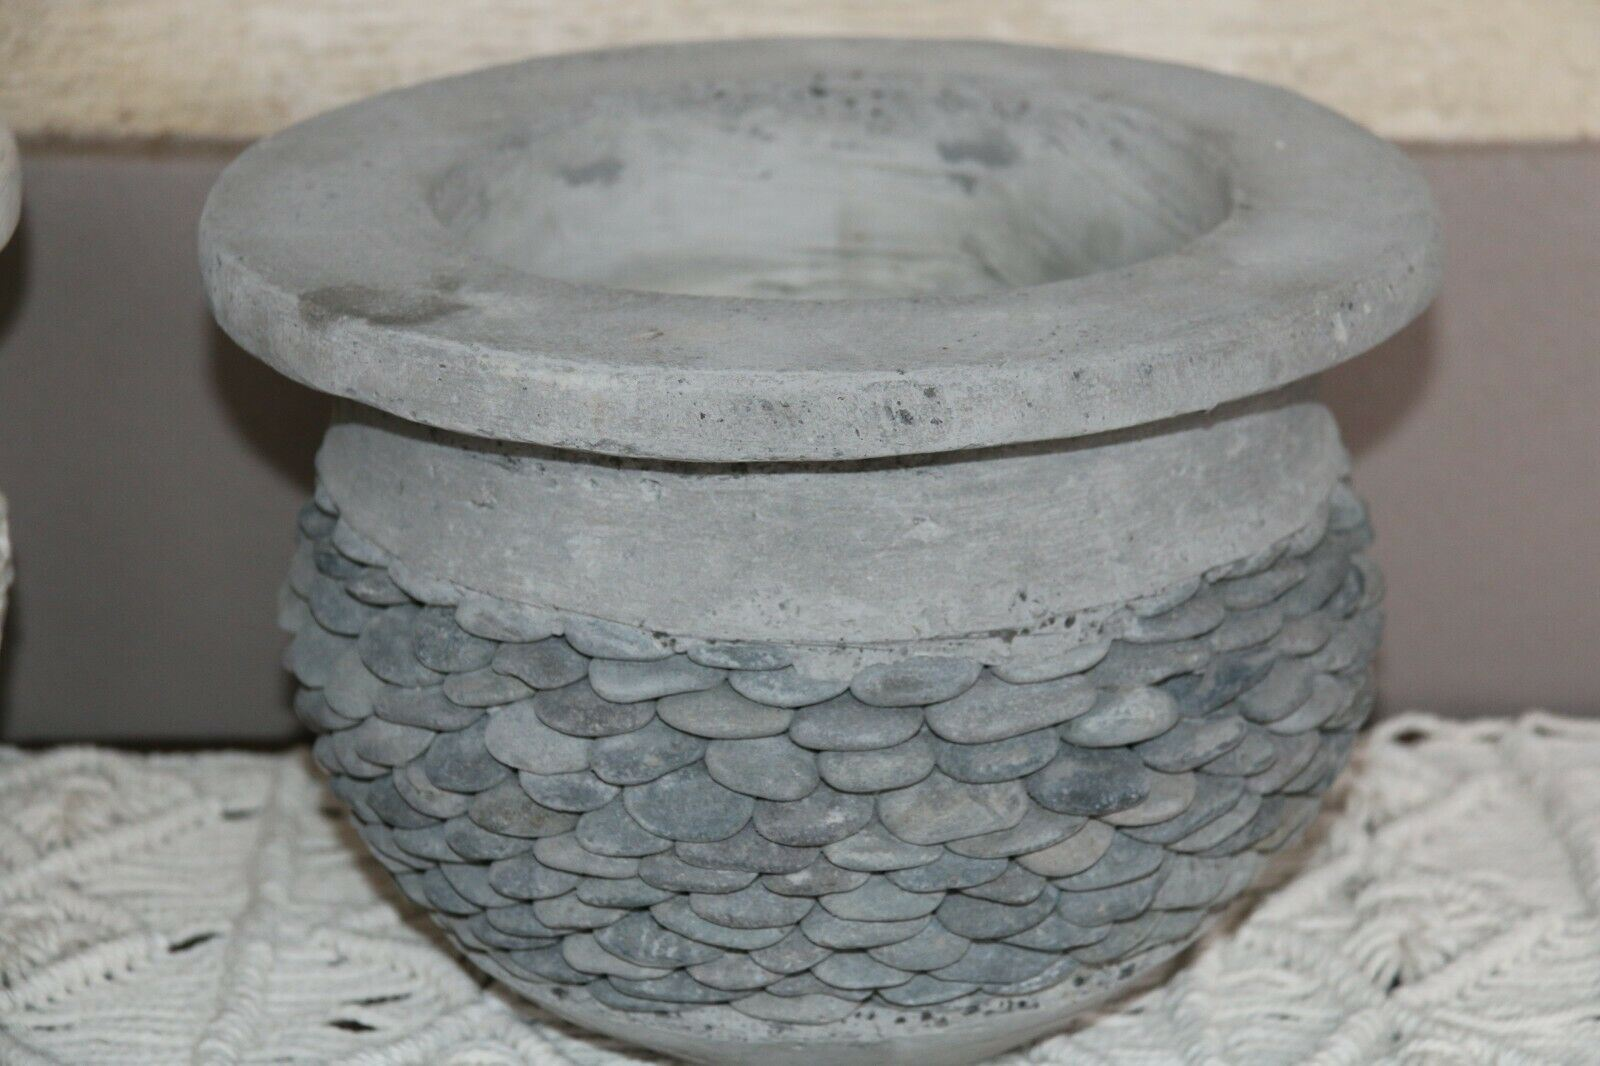 NEW Balinese Pebble  or Marble Chip Inlay Pots - Hand Crafted Bali Pots